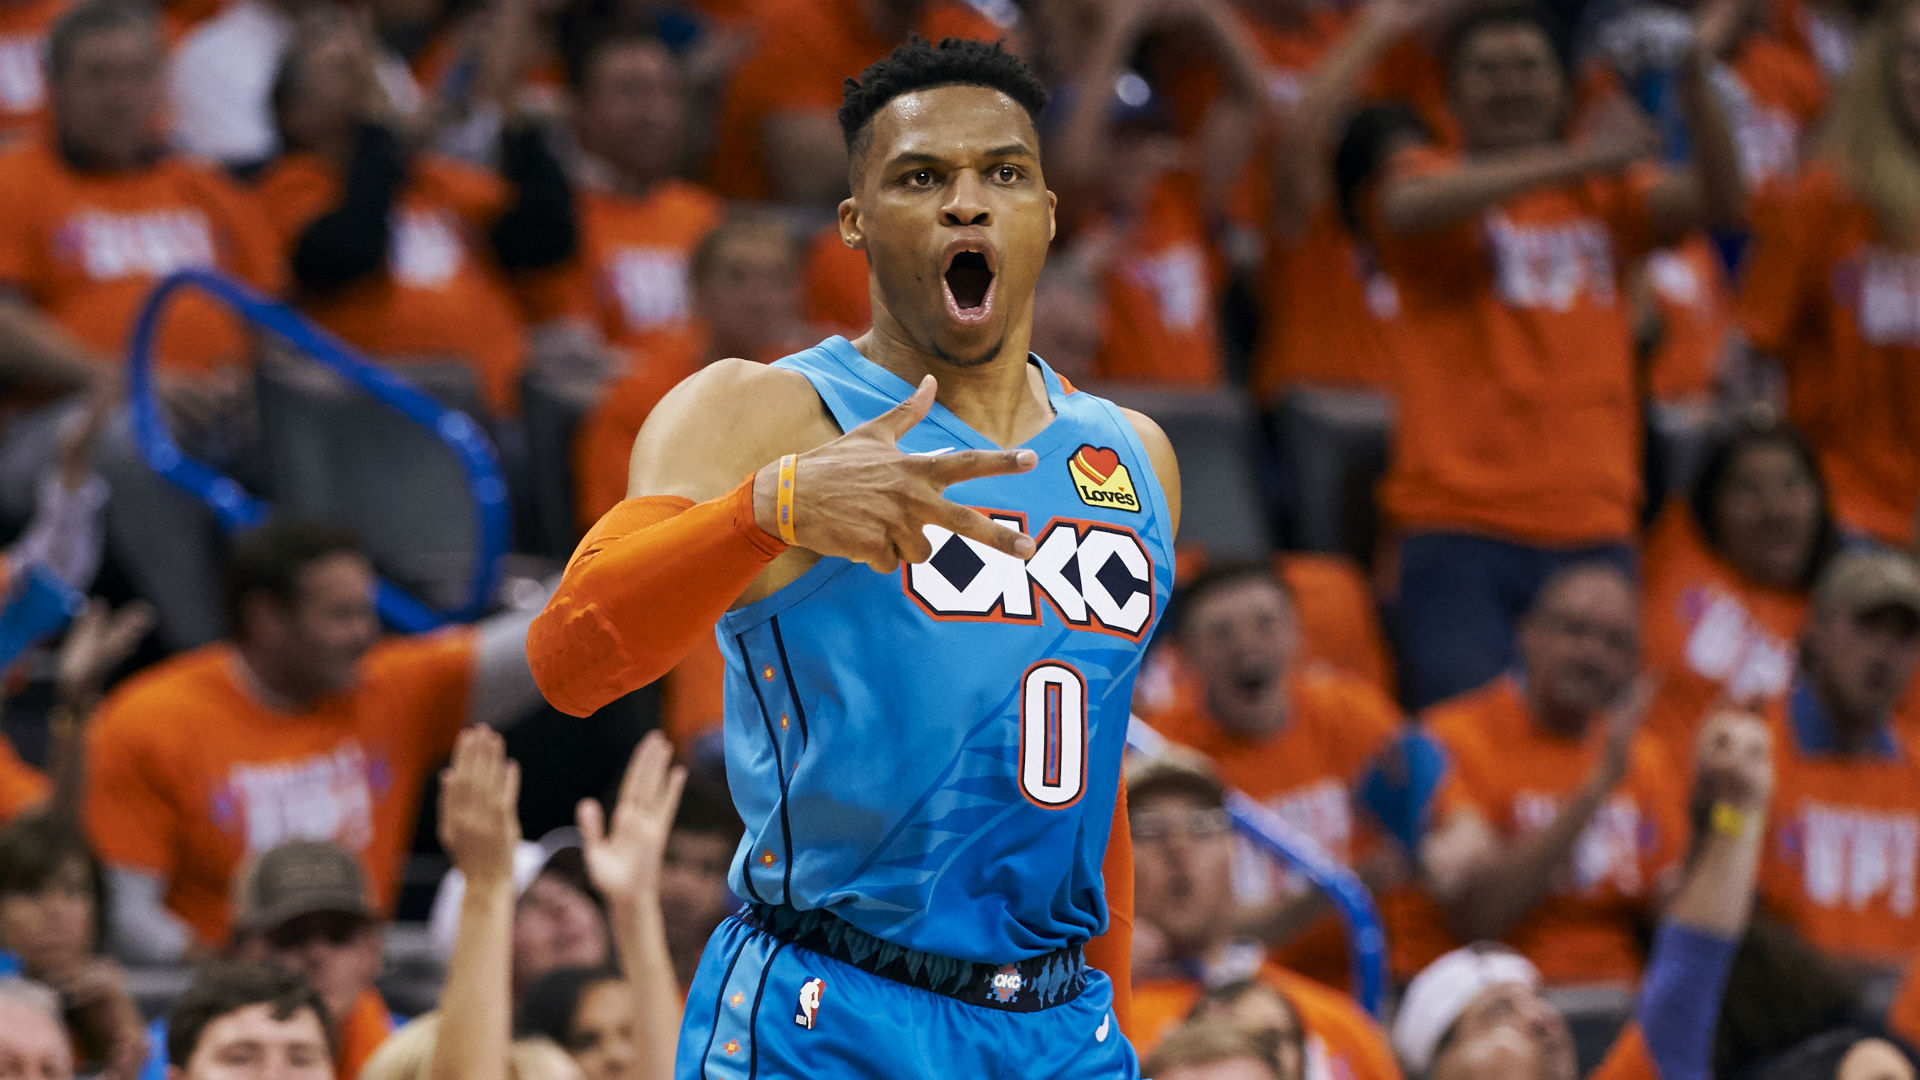 This is a picture of Russell Westbrook